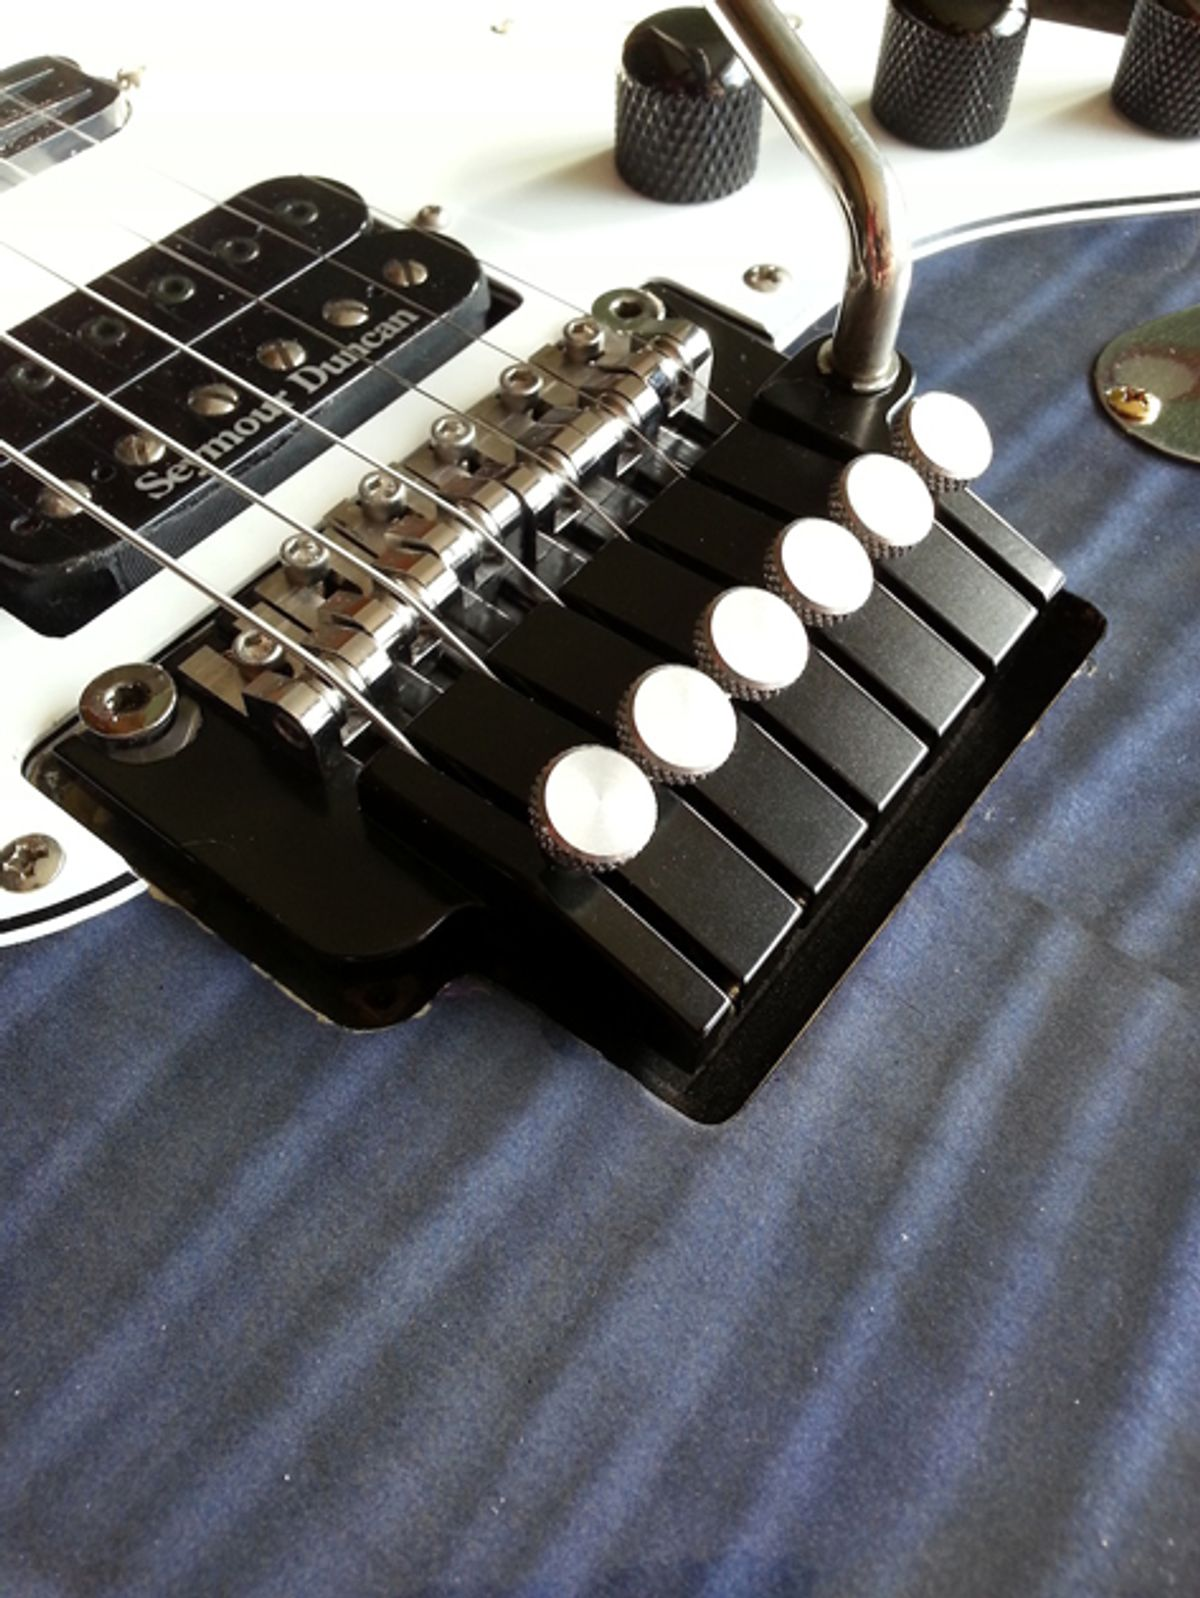 AxMax Introduces New Tremolo System